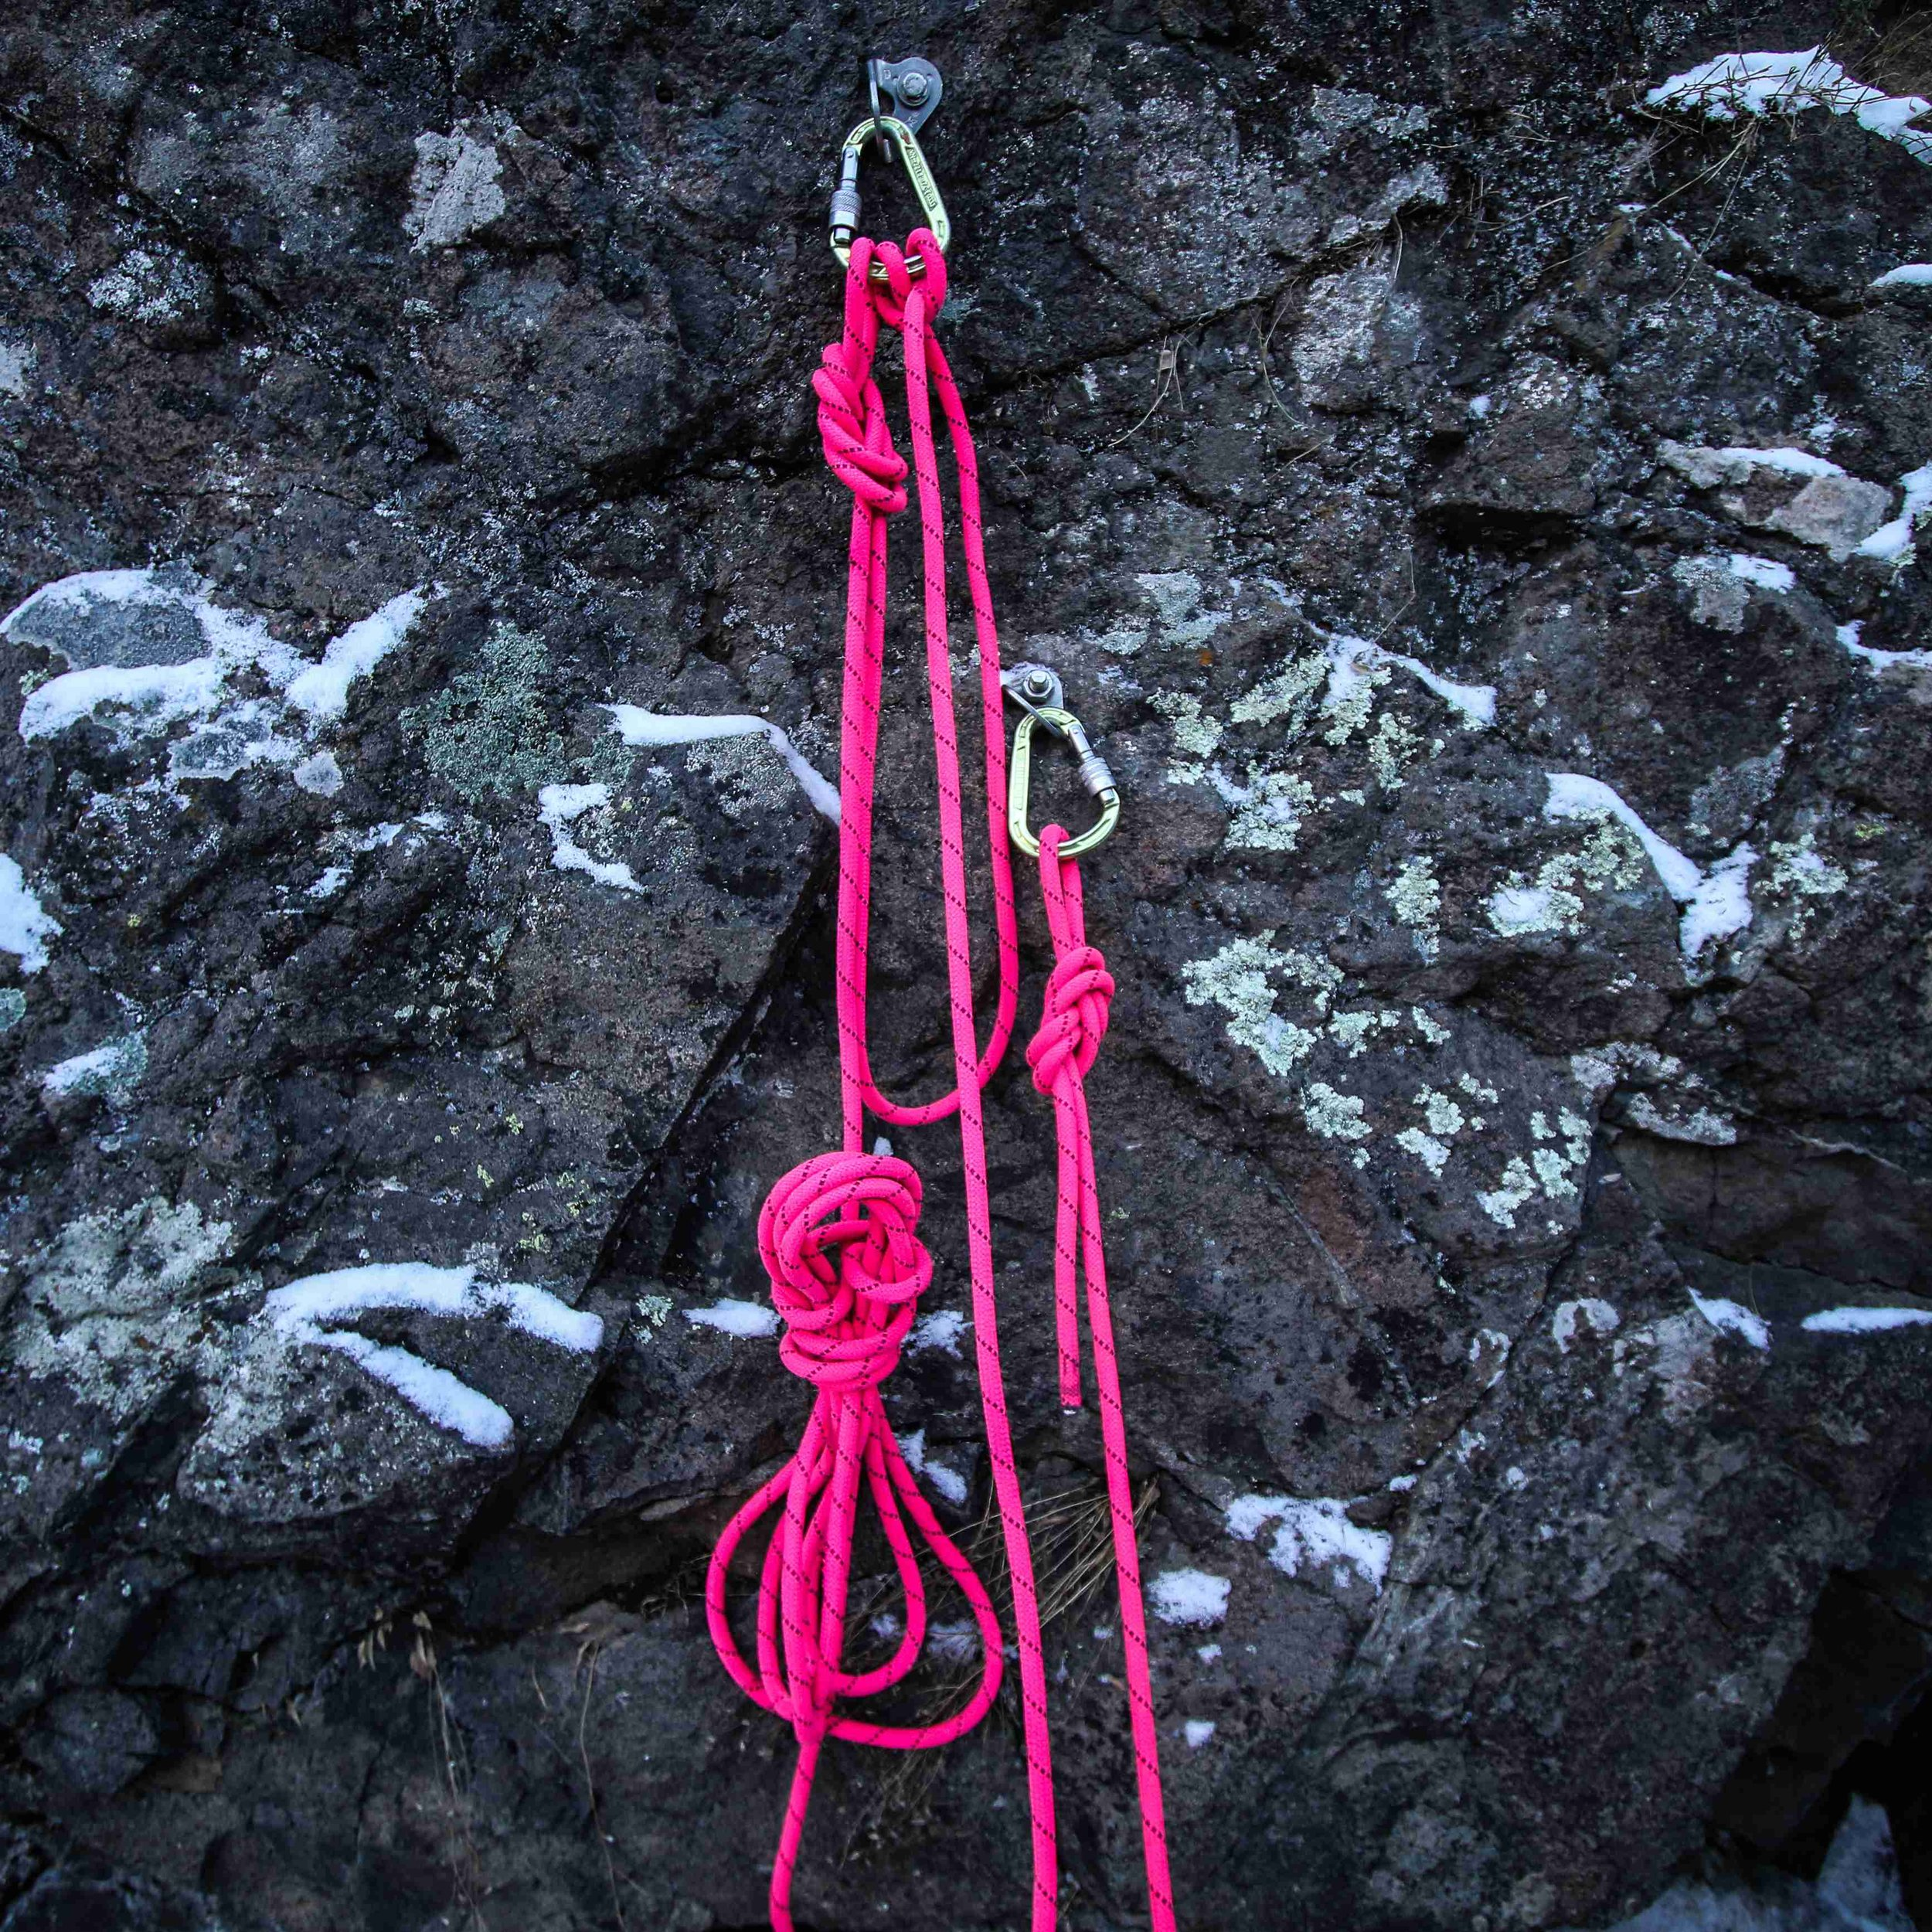 10. Tidy up the remaining rope in a hanging coil. -